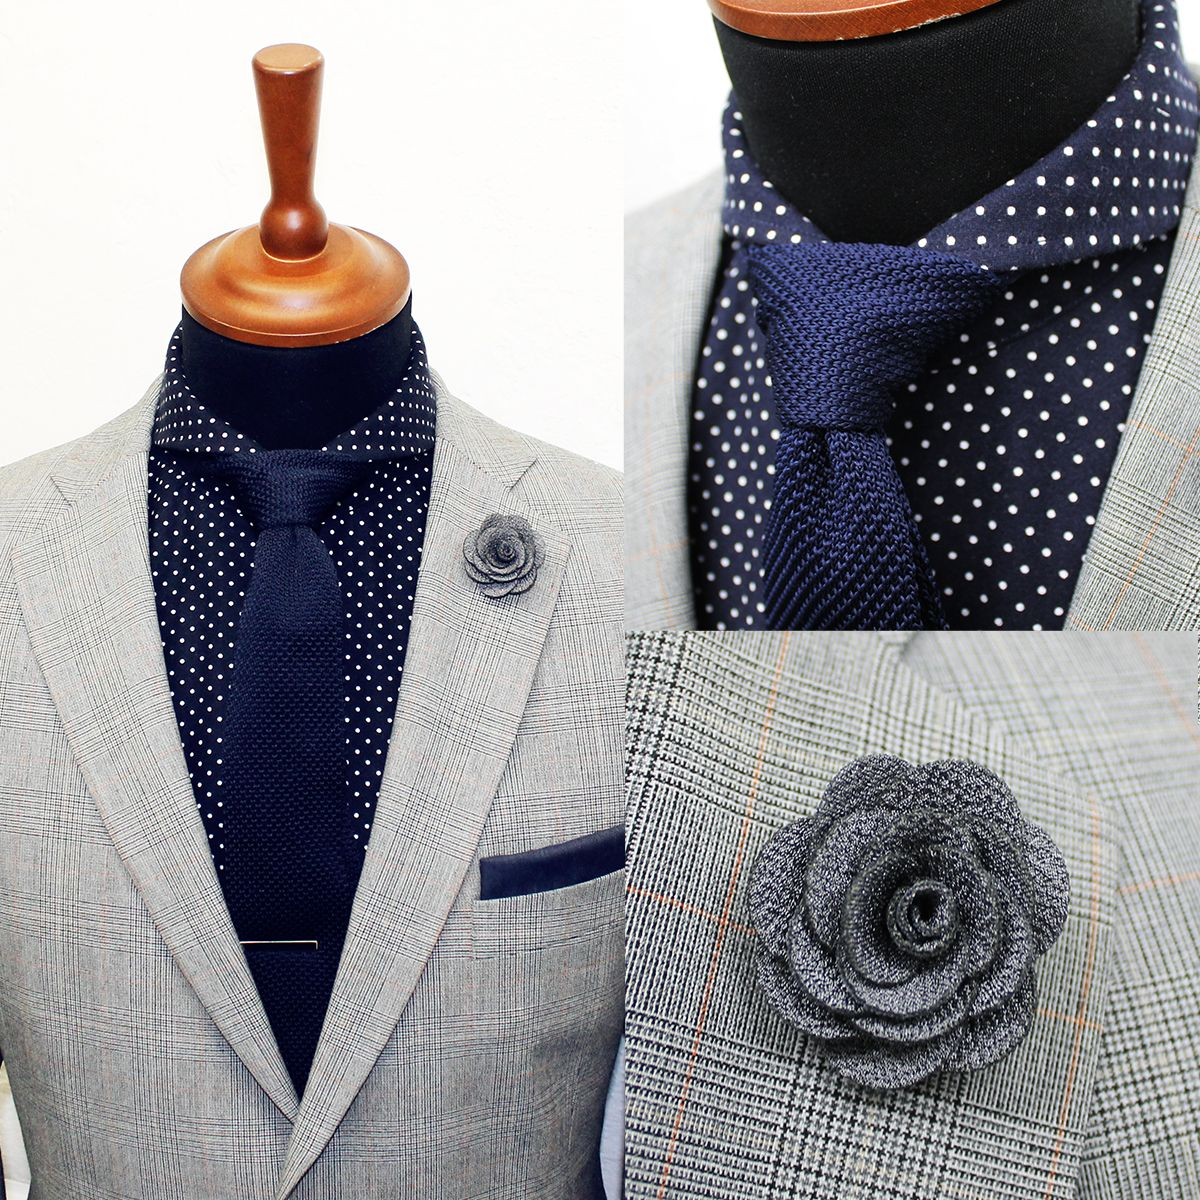 The new dark blue knitted tie available at Blue suit shirt tie combinations